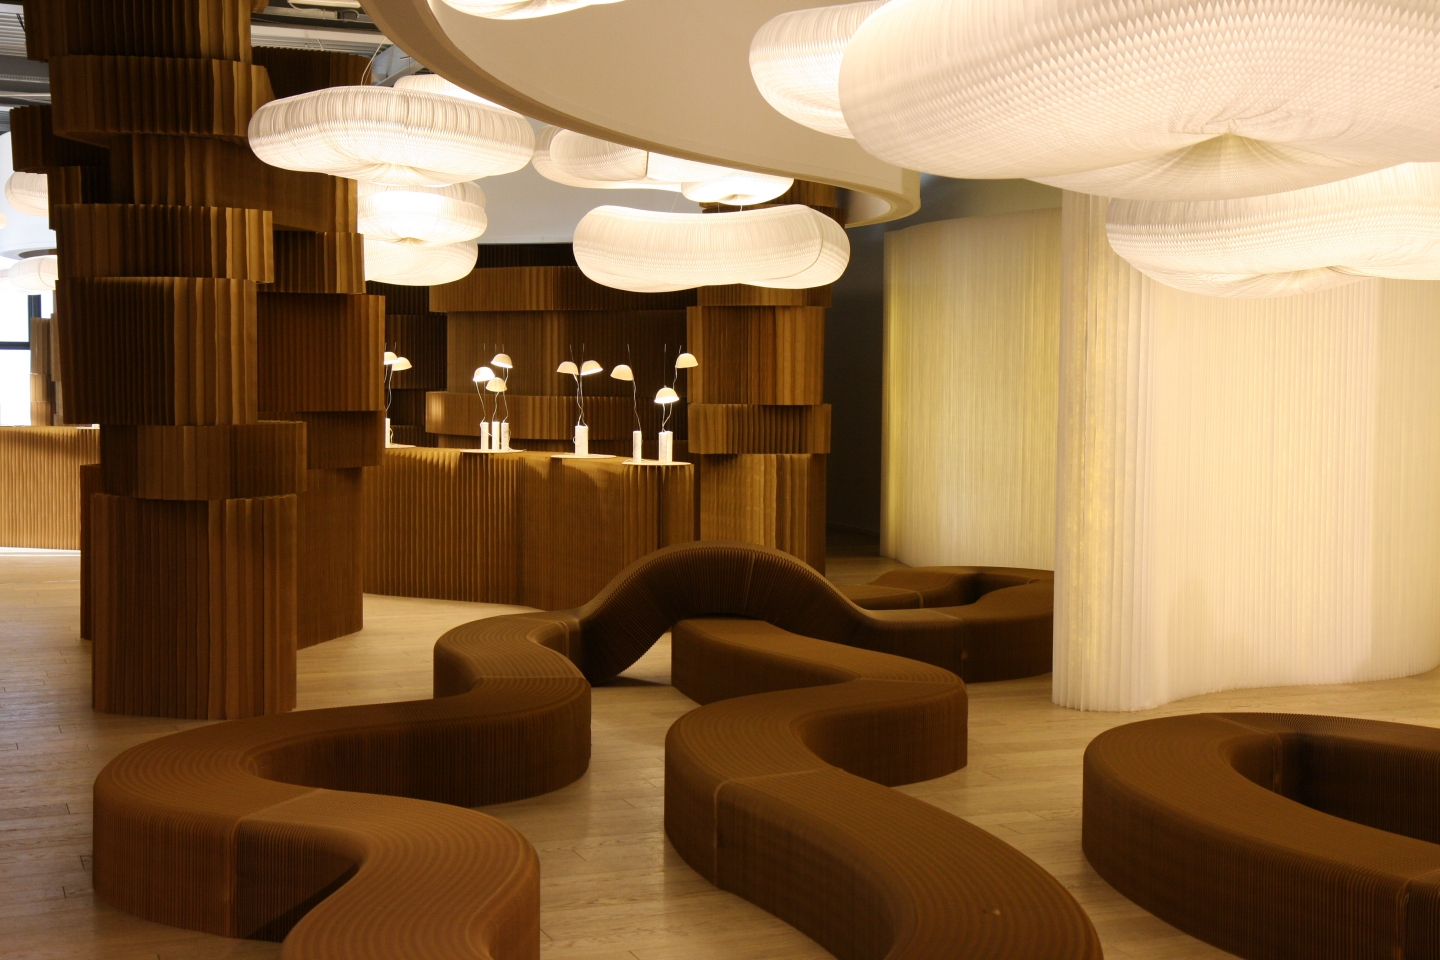 paper furniture and paper lighting - molo's booth at Superstudio Piu showcased textile loungers, cloud softlight pendants and brown paper softblocks.